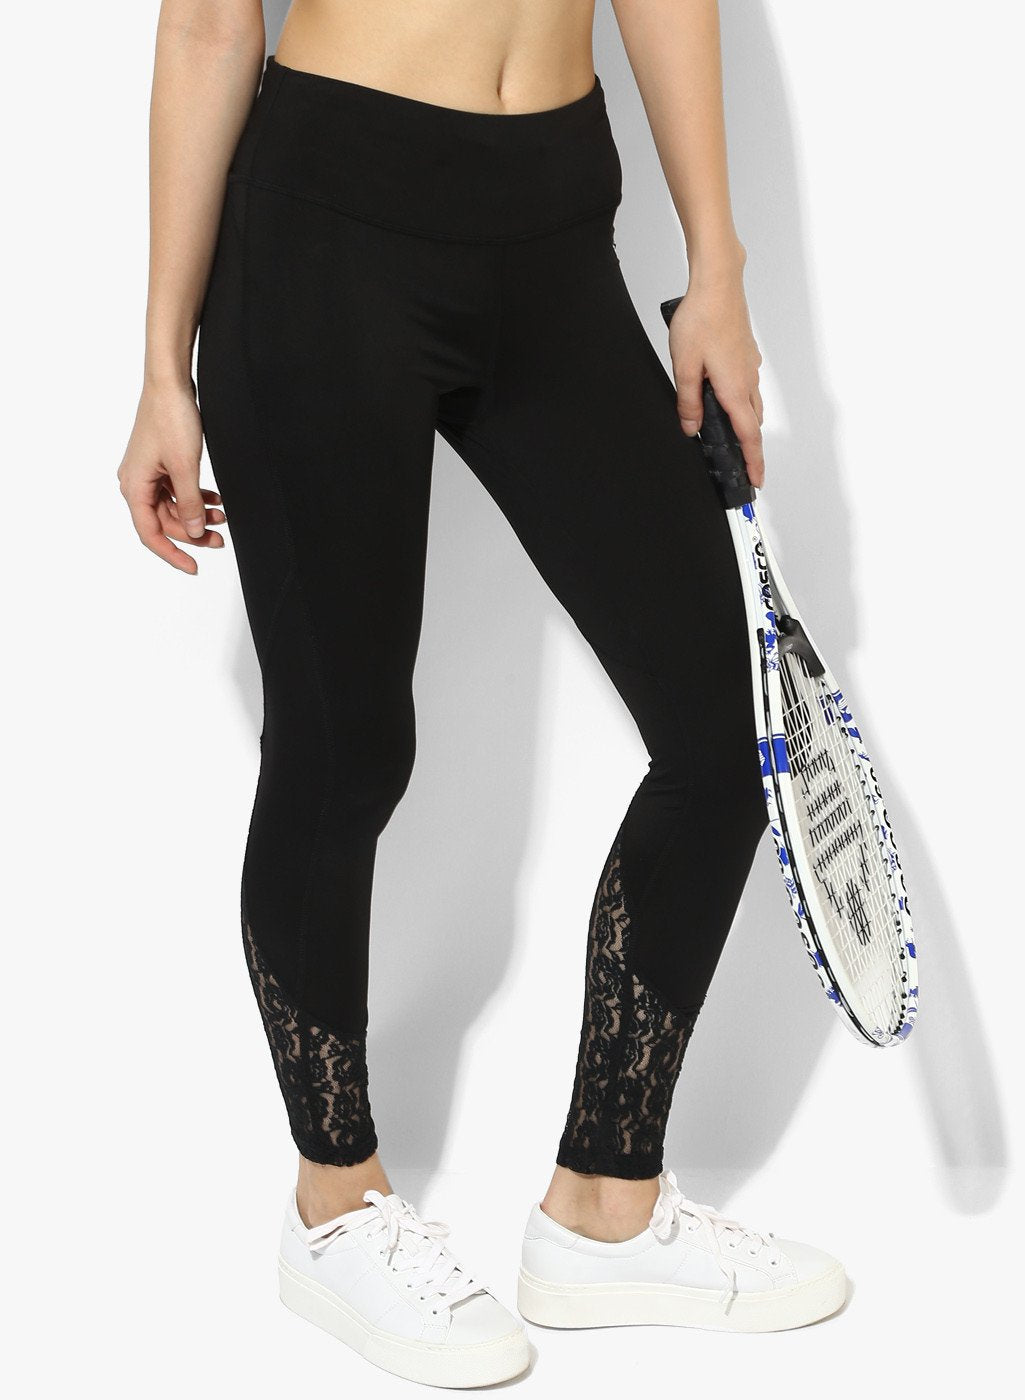 Shakti Warrior Workout Yoga pants Athleisure Black lace leggings